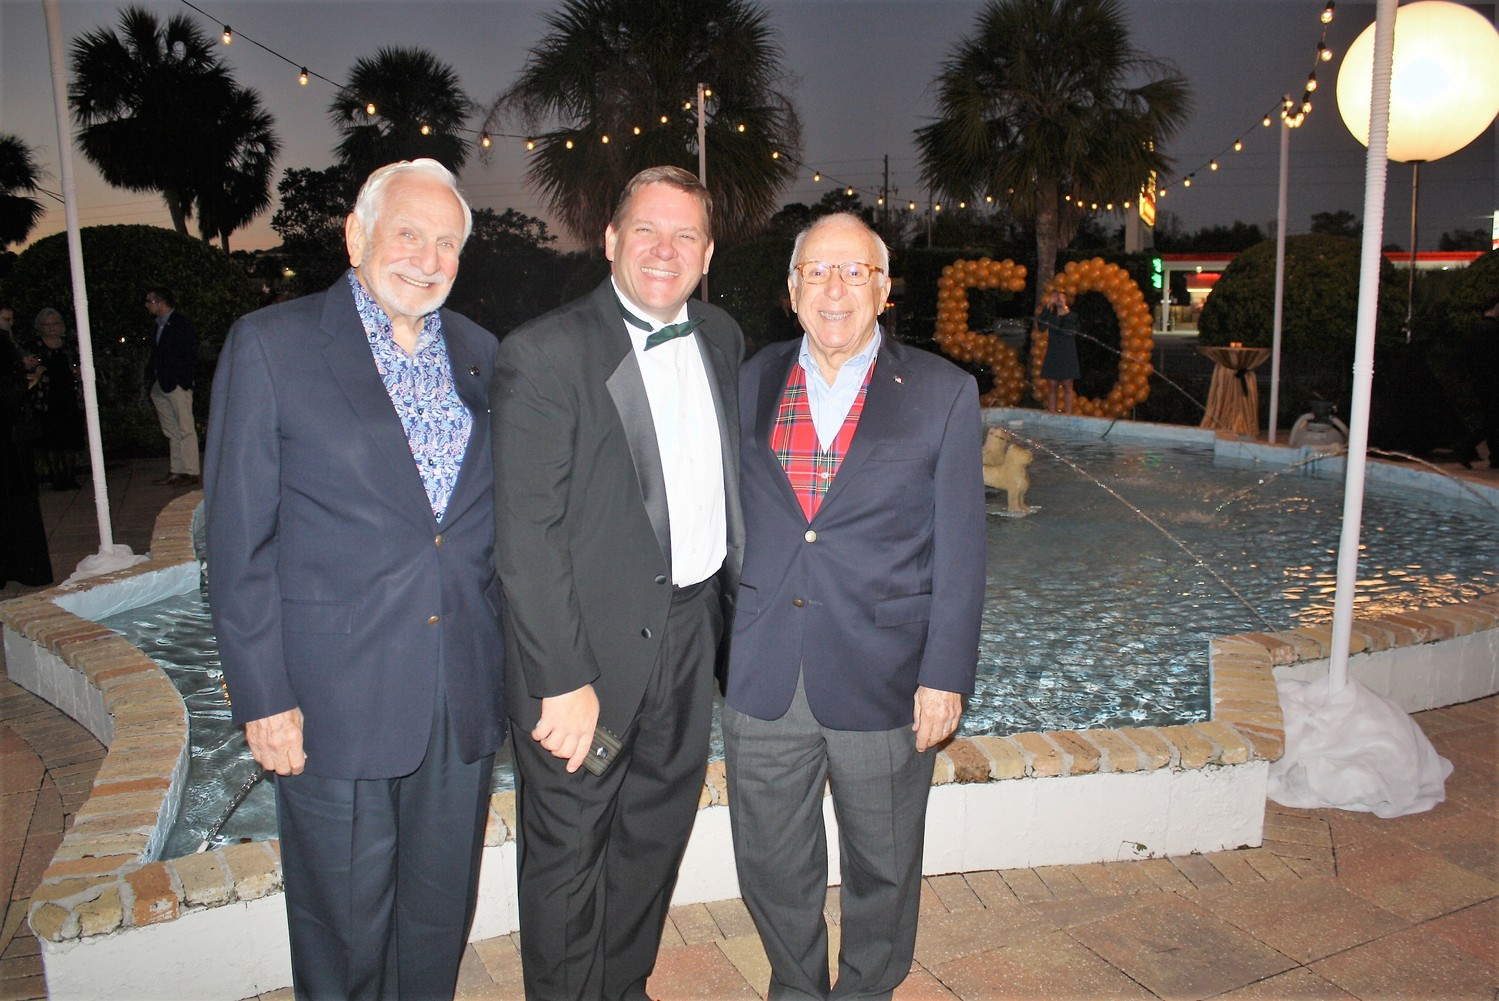 Alhambra Managing Partner Craig Smith (center) stands with former Alhambra owner Ted Johnson (right) and Barry Zisser (left).